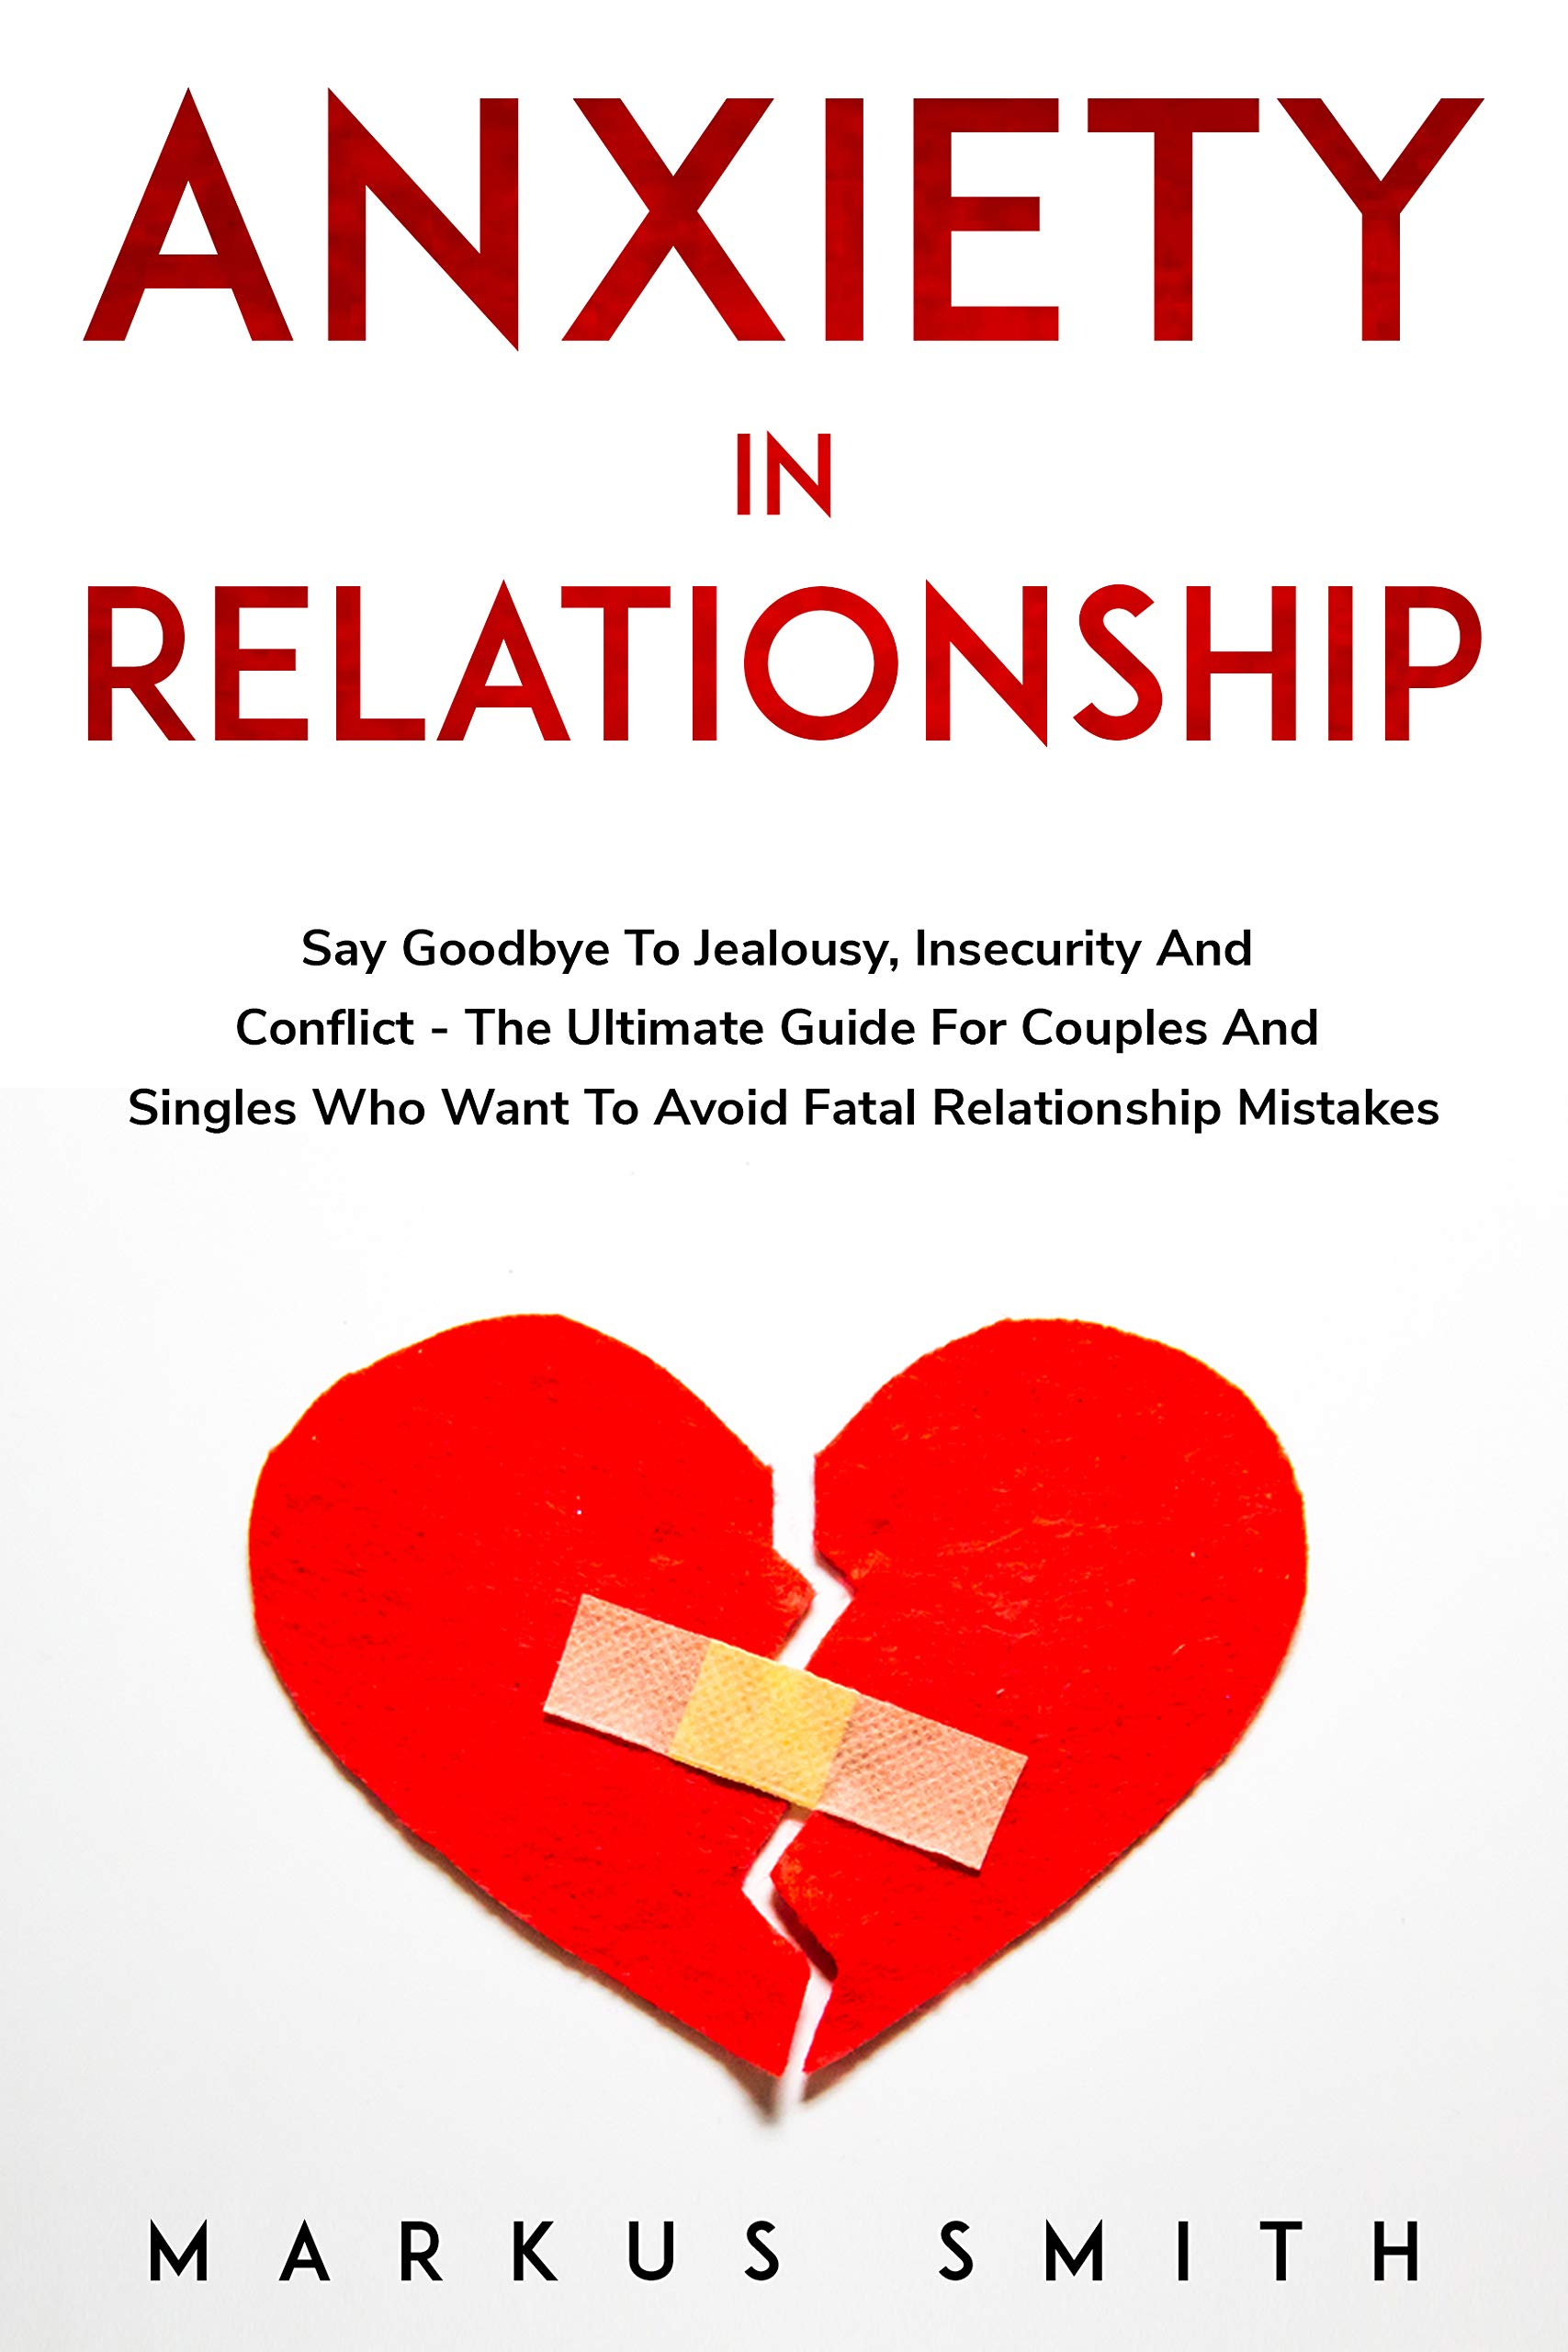 Anxiety In Relationship: Say Goodbye To Jealousy, Insecurity And Conflict - The Ultimate Guide For Couples And Singles Who Want To Avoid Fatal Relationship Mistakes